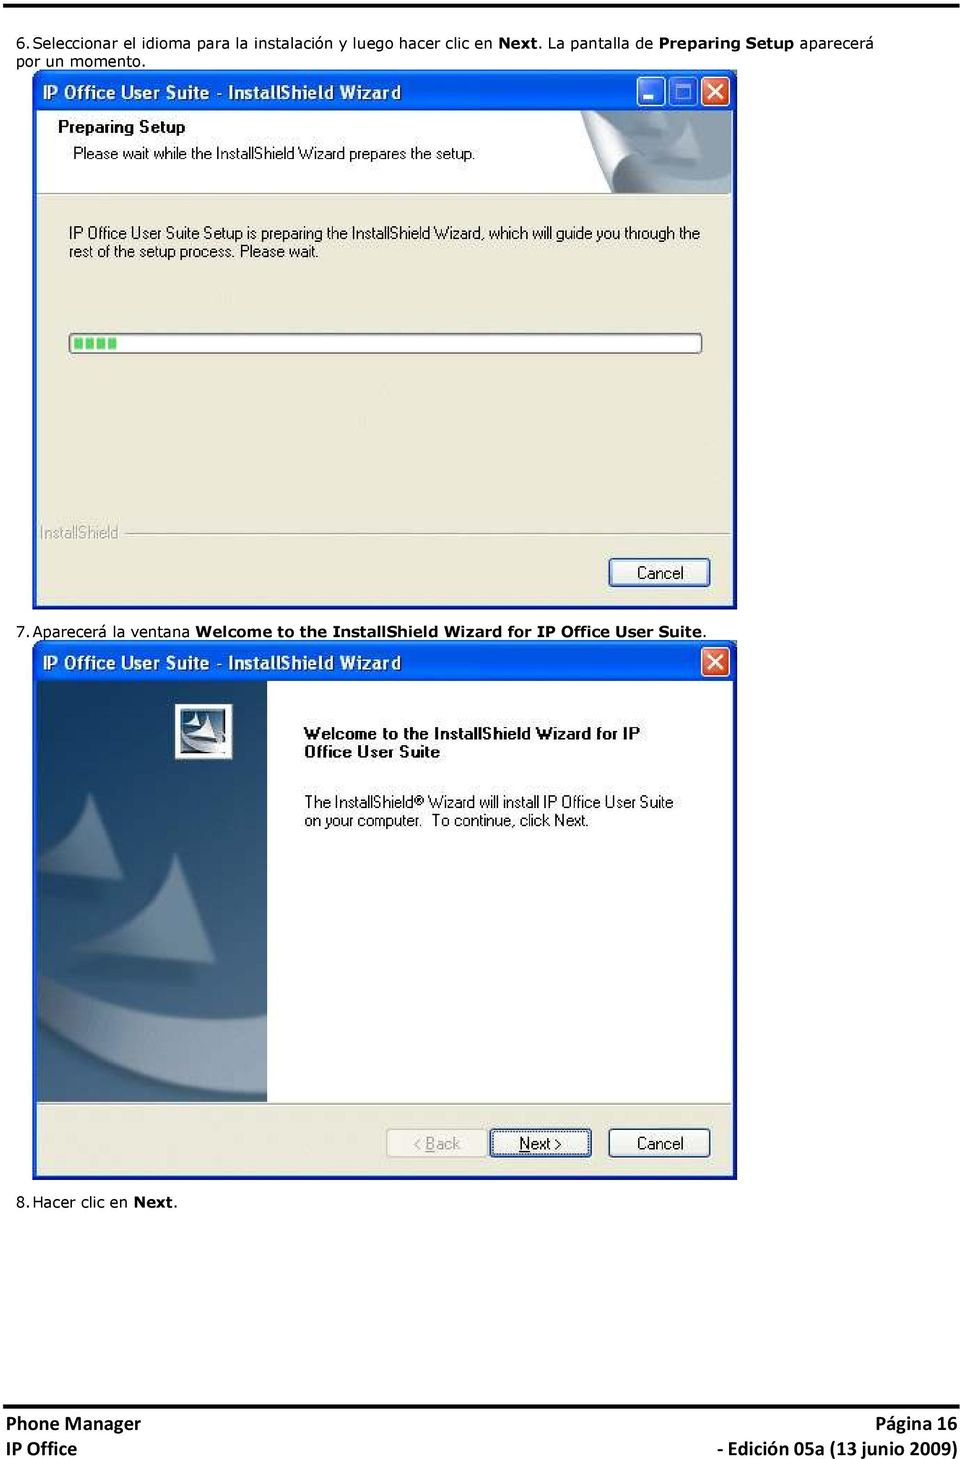 7. Aparecerá la ventana Welcome to the InstallShield Wizard for